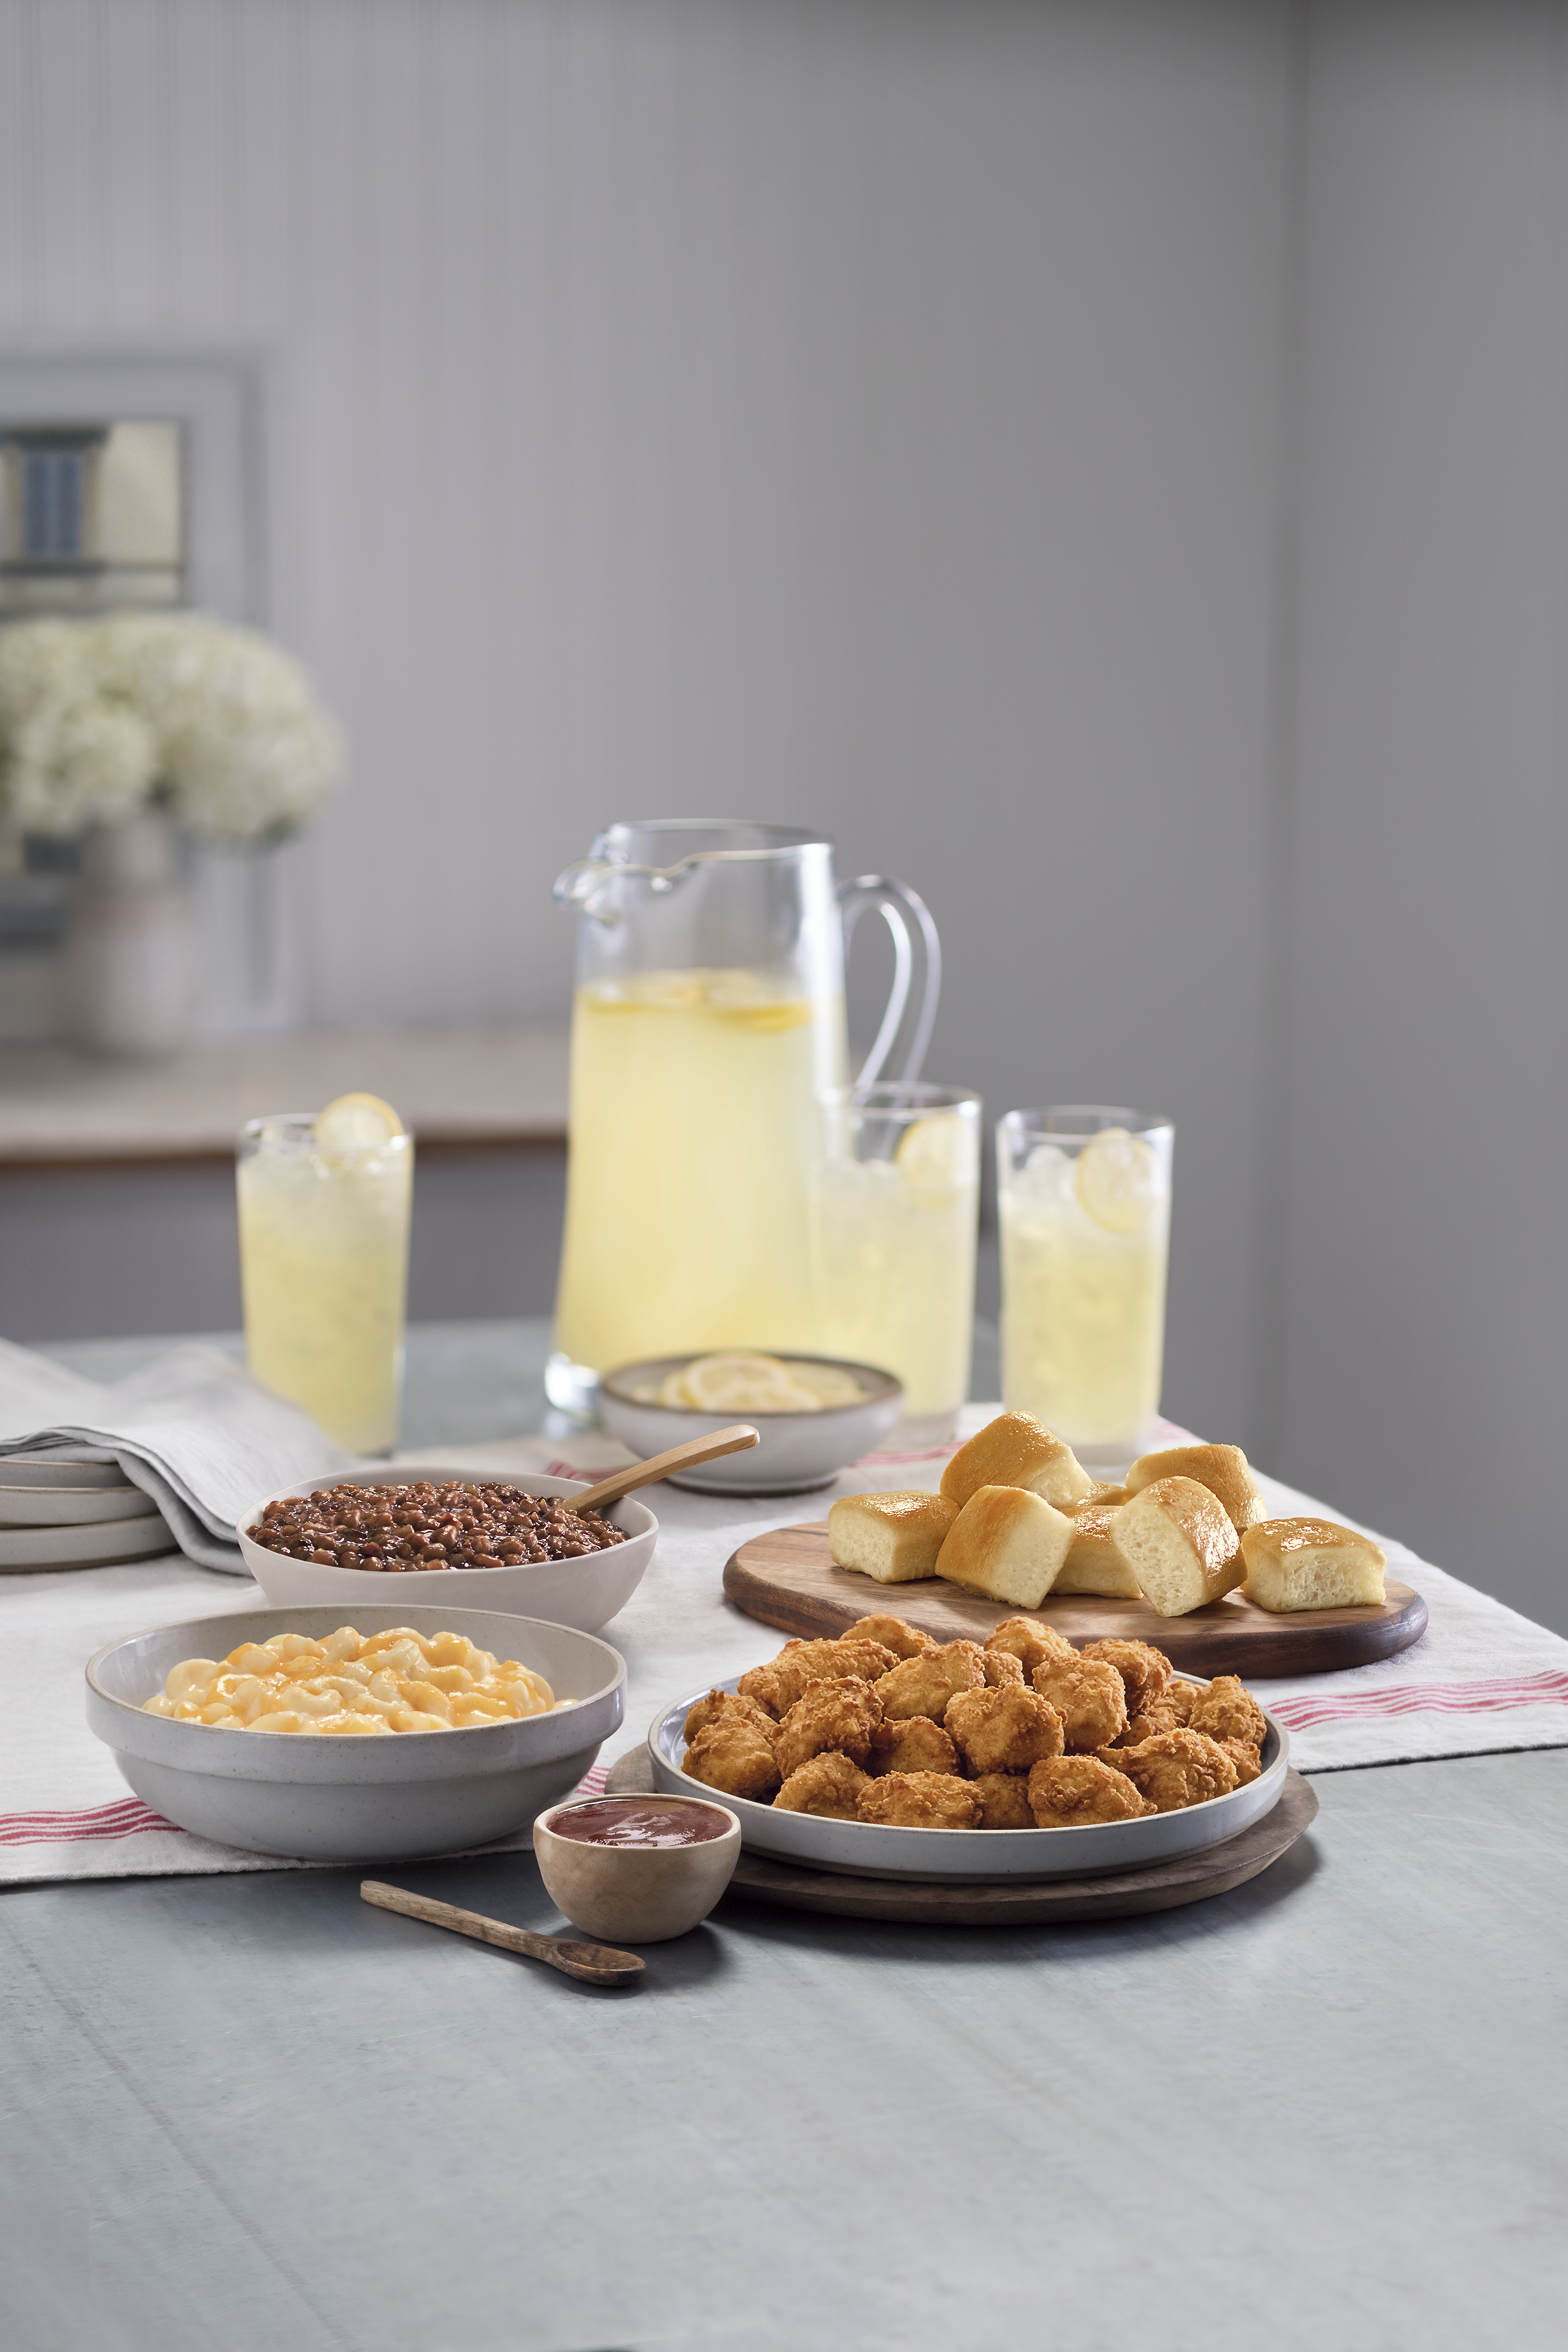 Chick-fil-A Is About to Make Picking Up Dinner Easy and Delicious